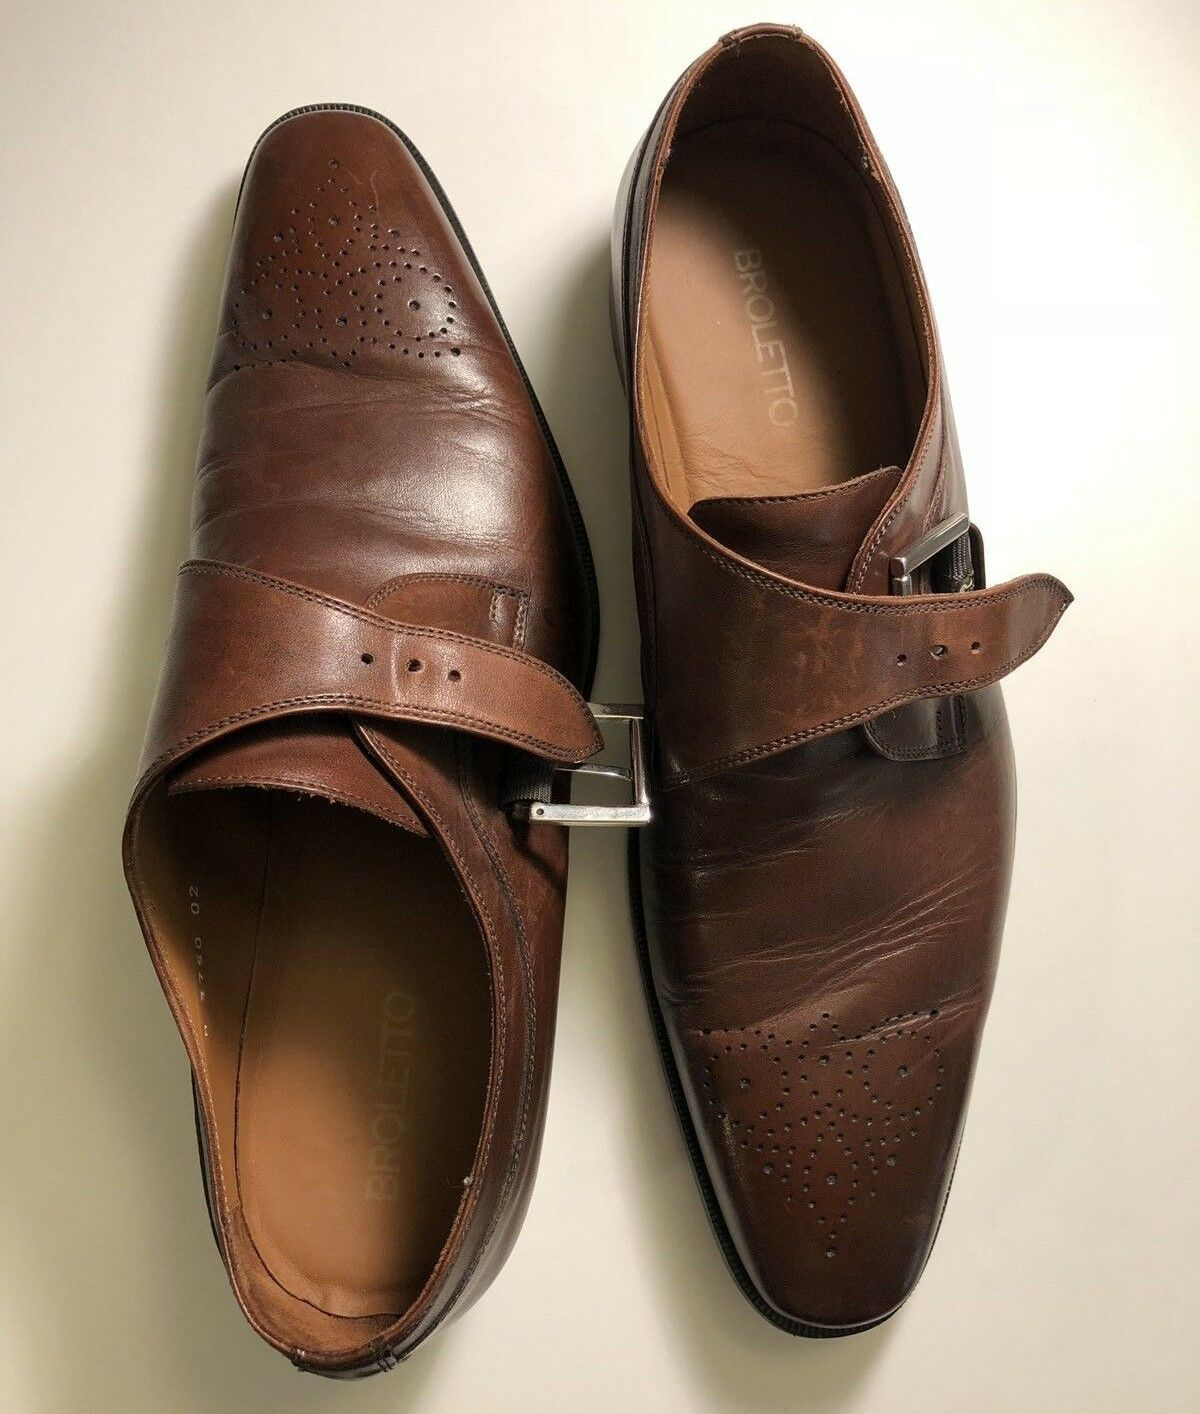 Broletto   McKinley Monk Strap Leather Brogues   Italian Dress shoes   Sz 12